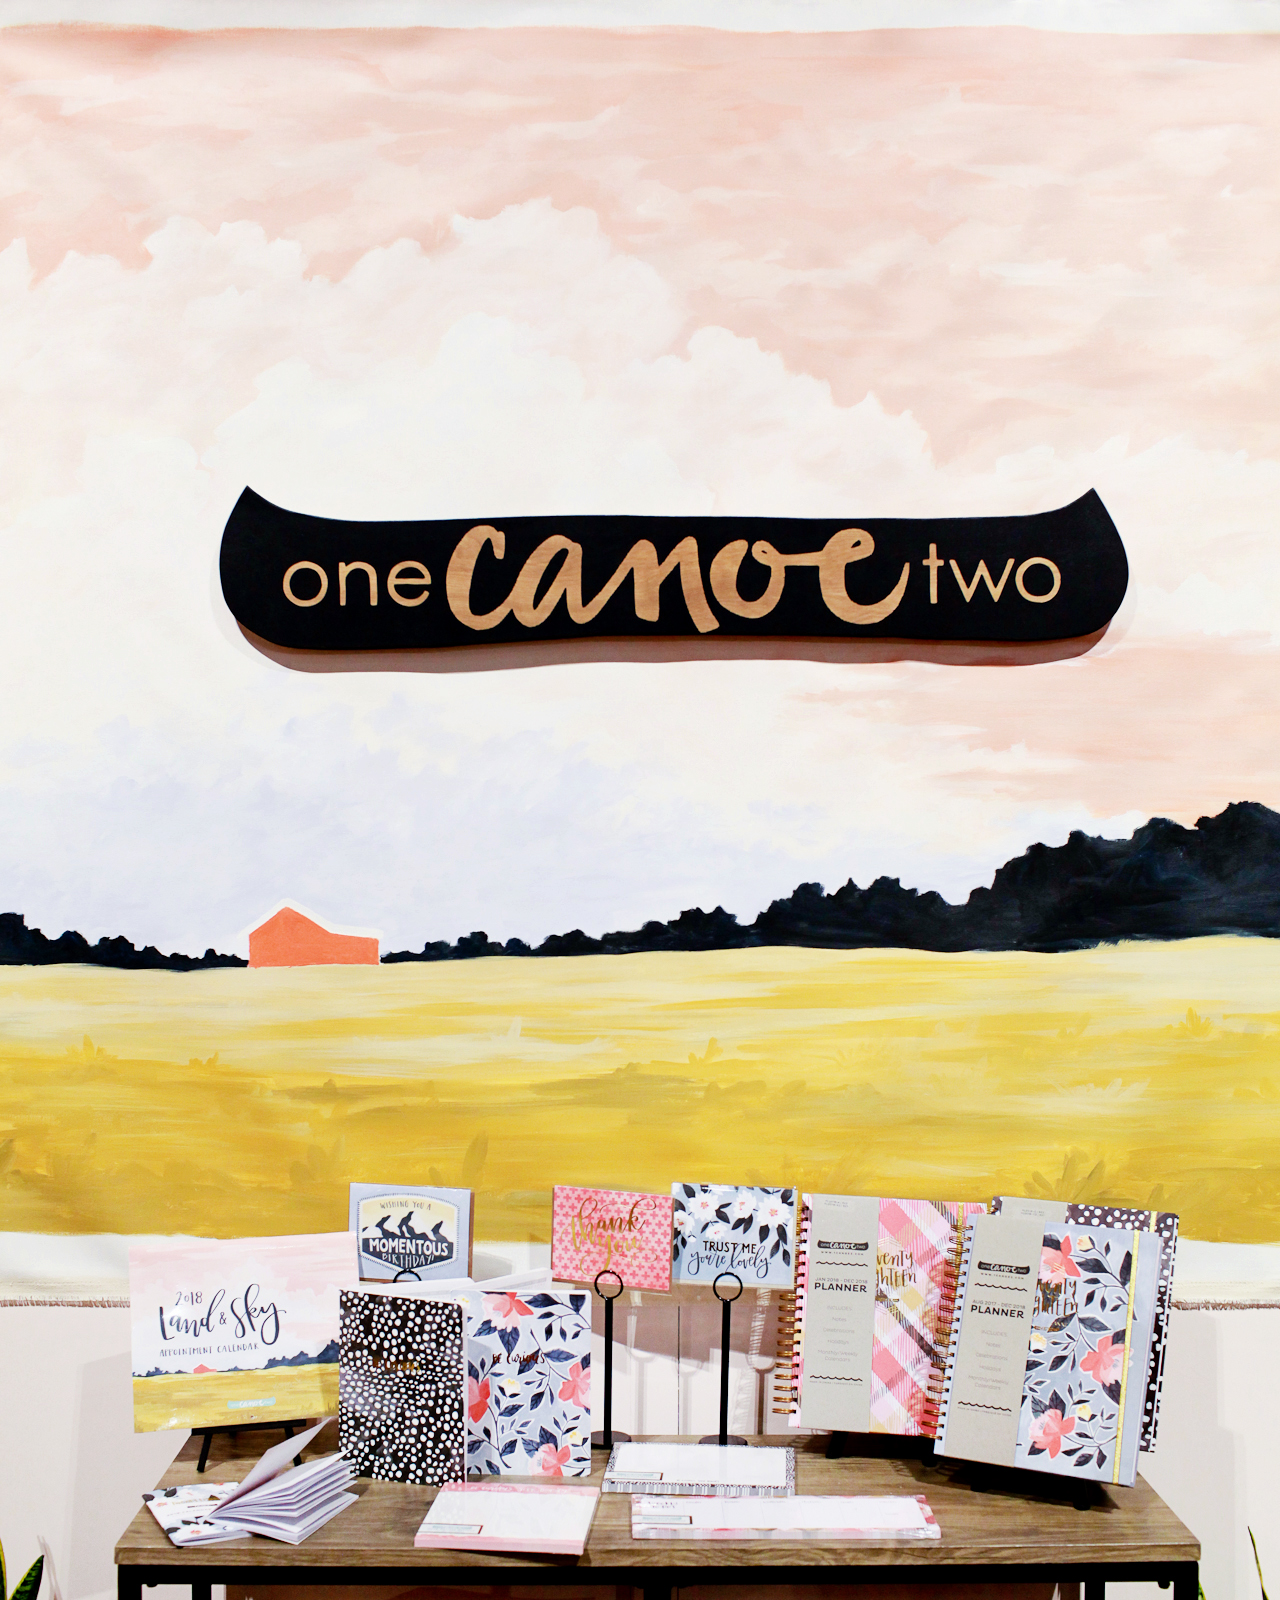 NSS 2017: One Canoe Two